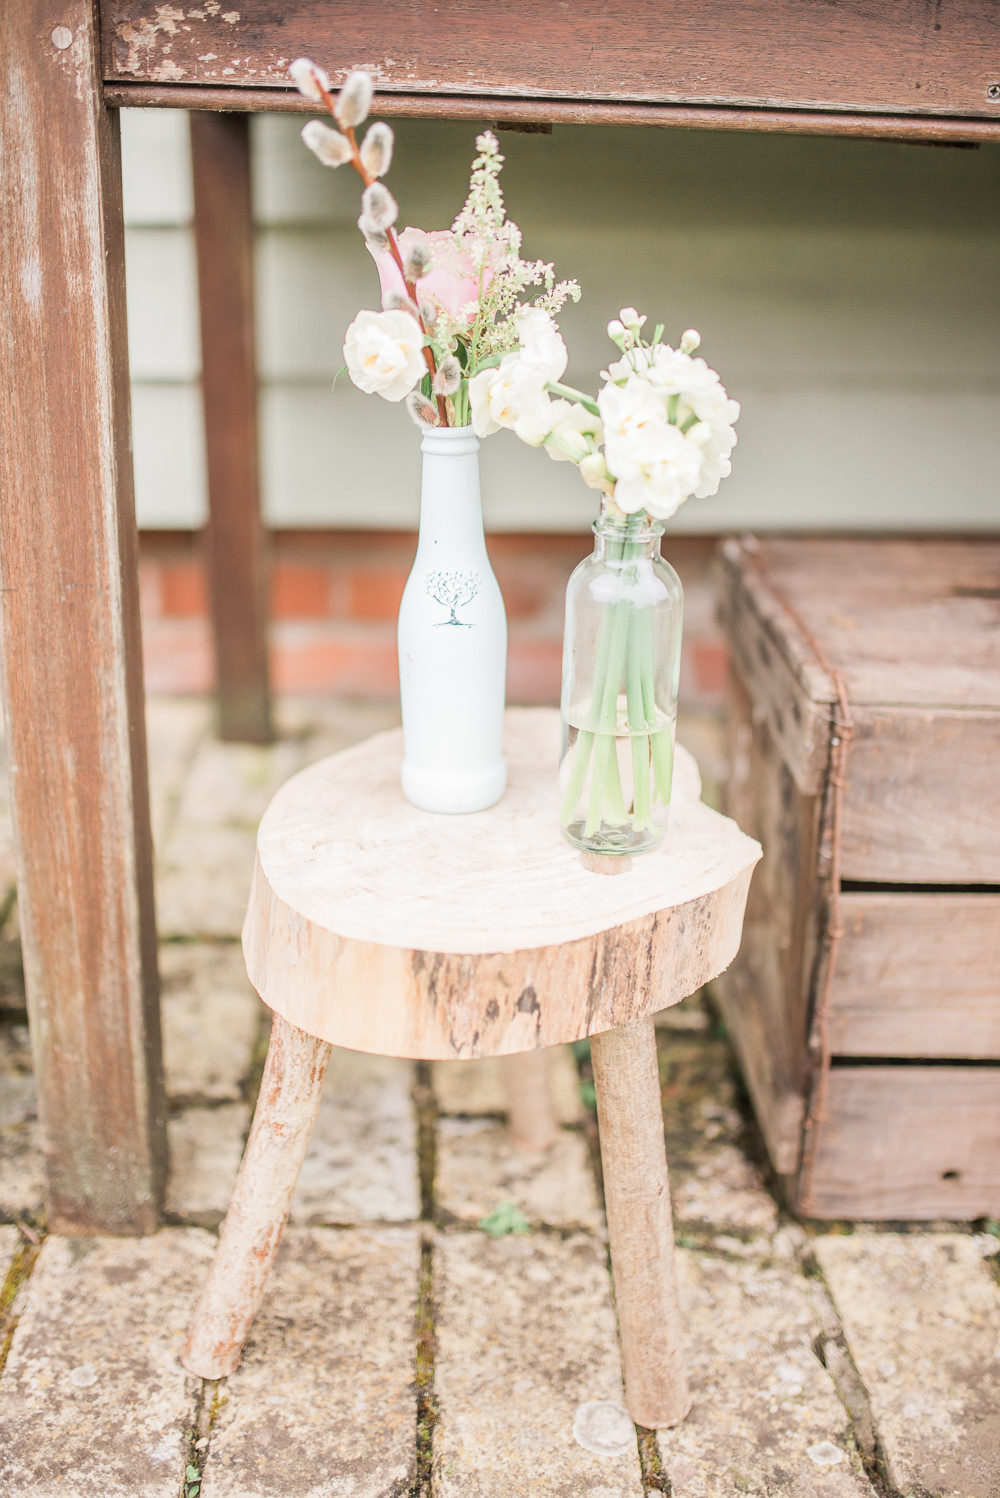 Wooden Stool Flowers Bottles Springtime Bridal Shower Ideas Hen Party Laura Jane Photography